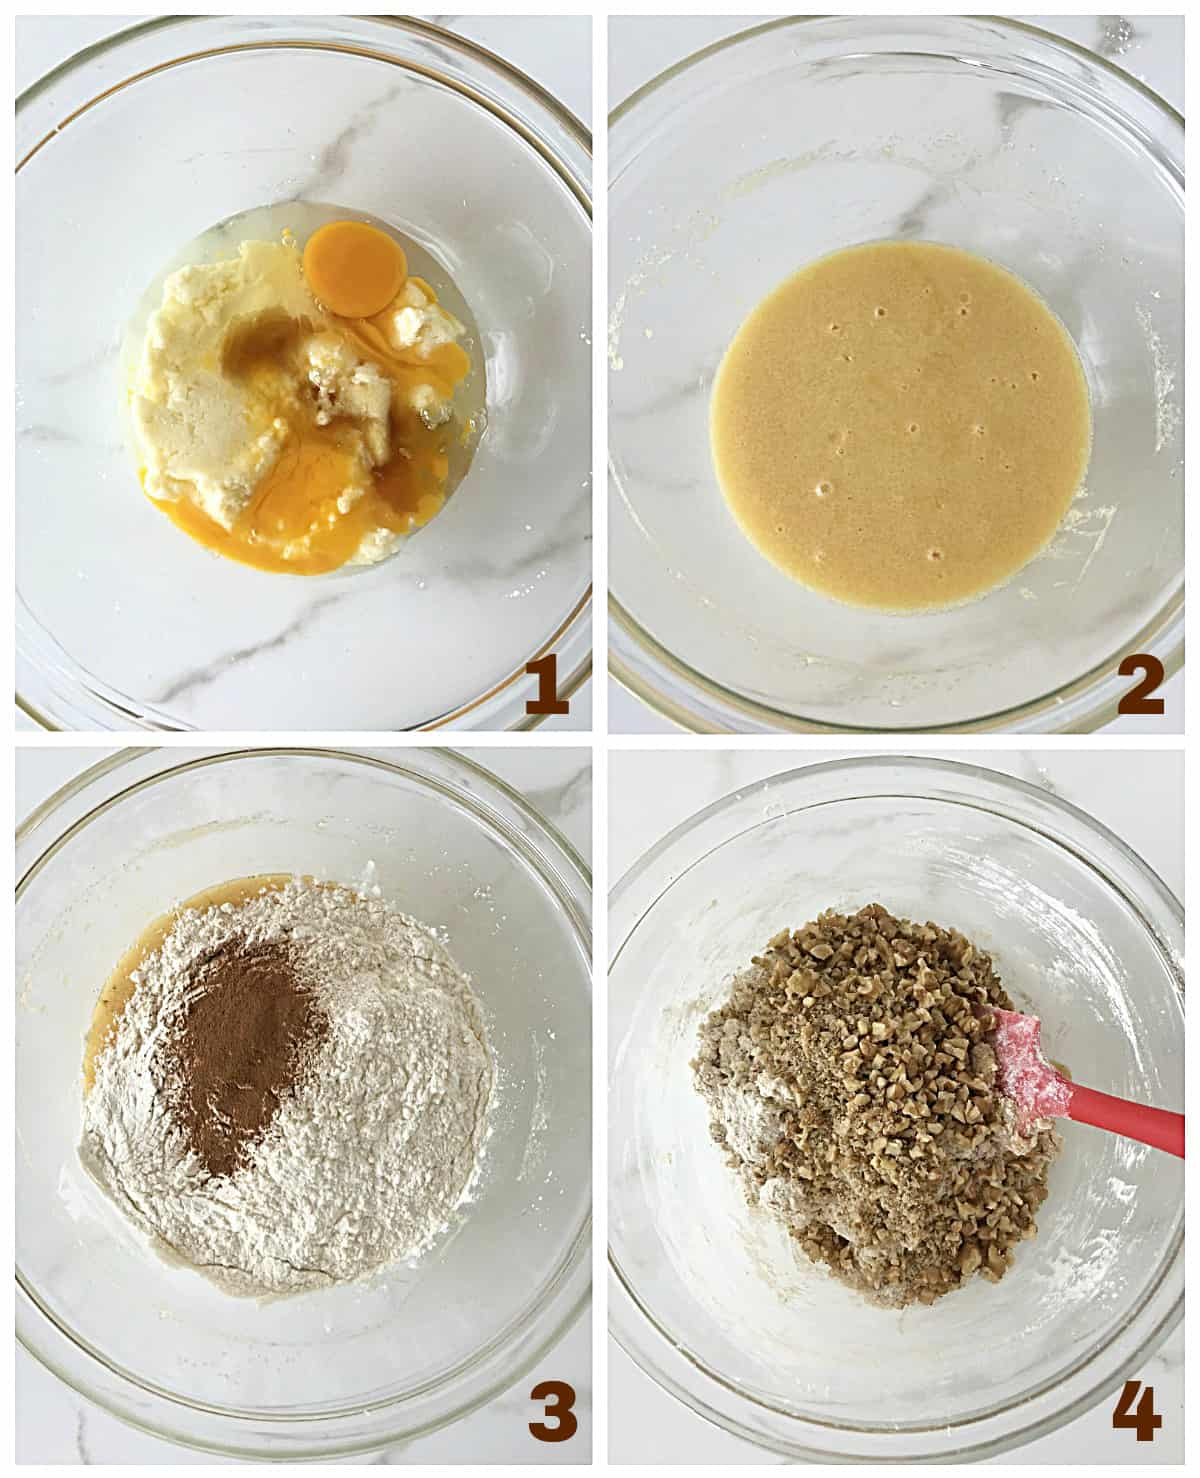 Image collage of cinnamon dough process. Glass bowl with butter and eggs, mixed liquid ingredients, added dry ingredients, walnuts and red spatula